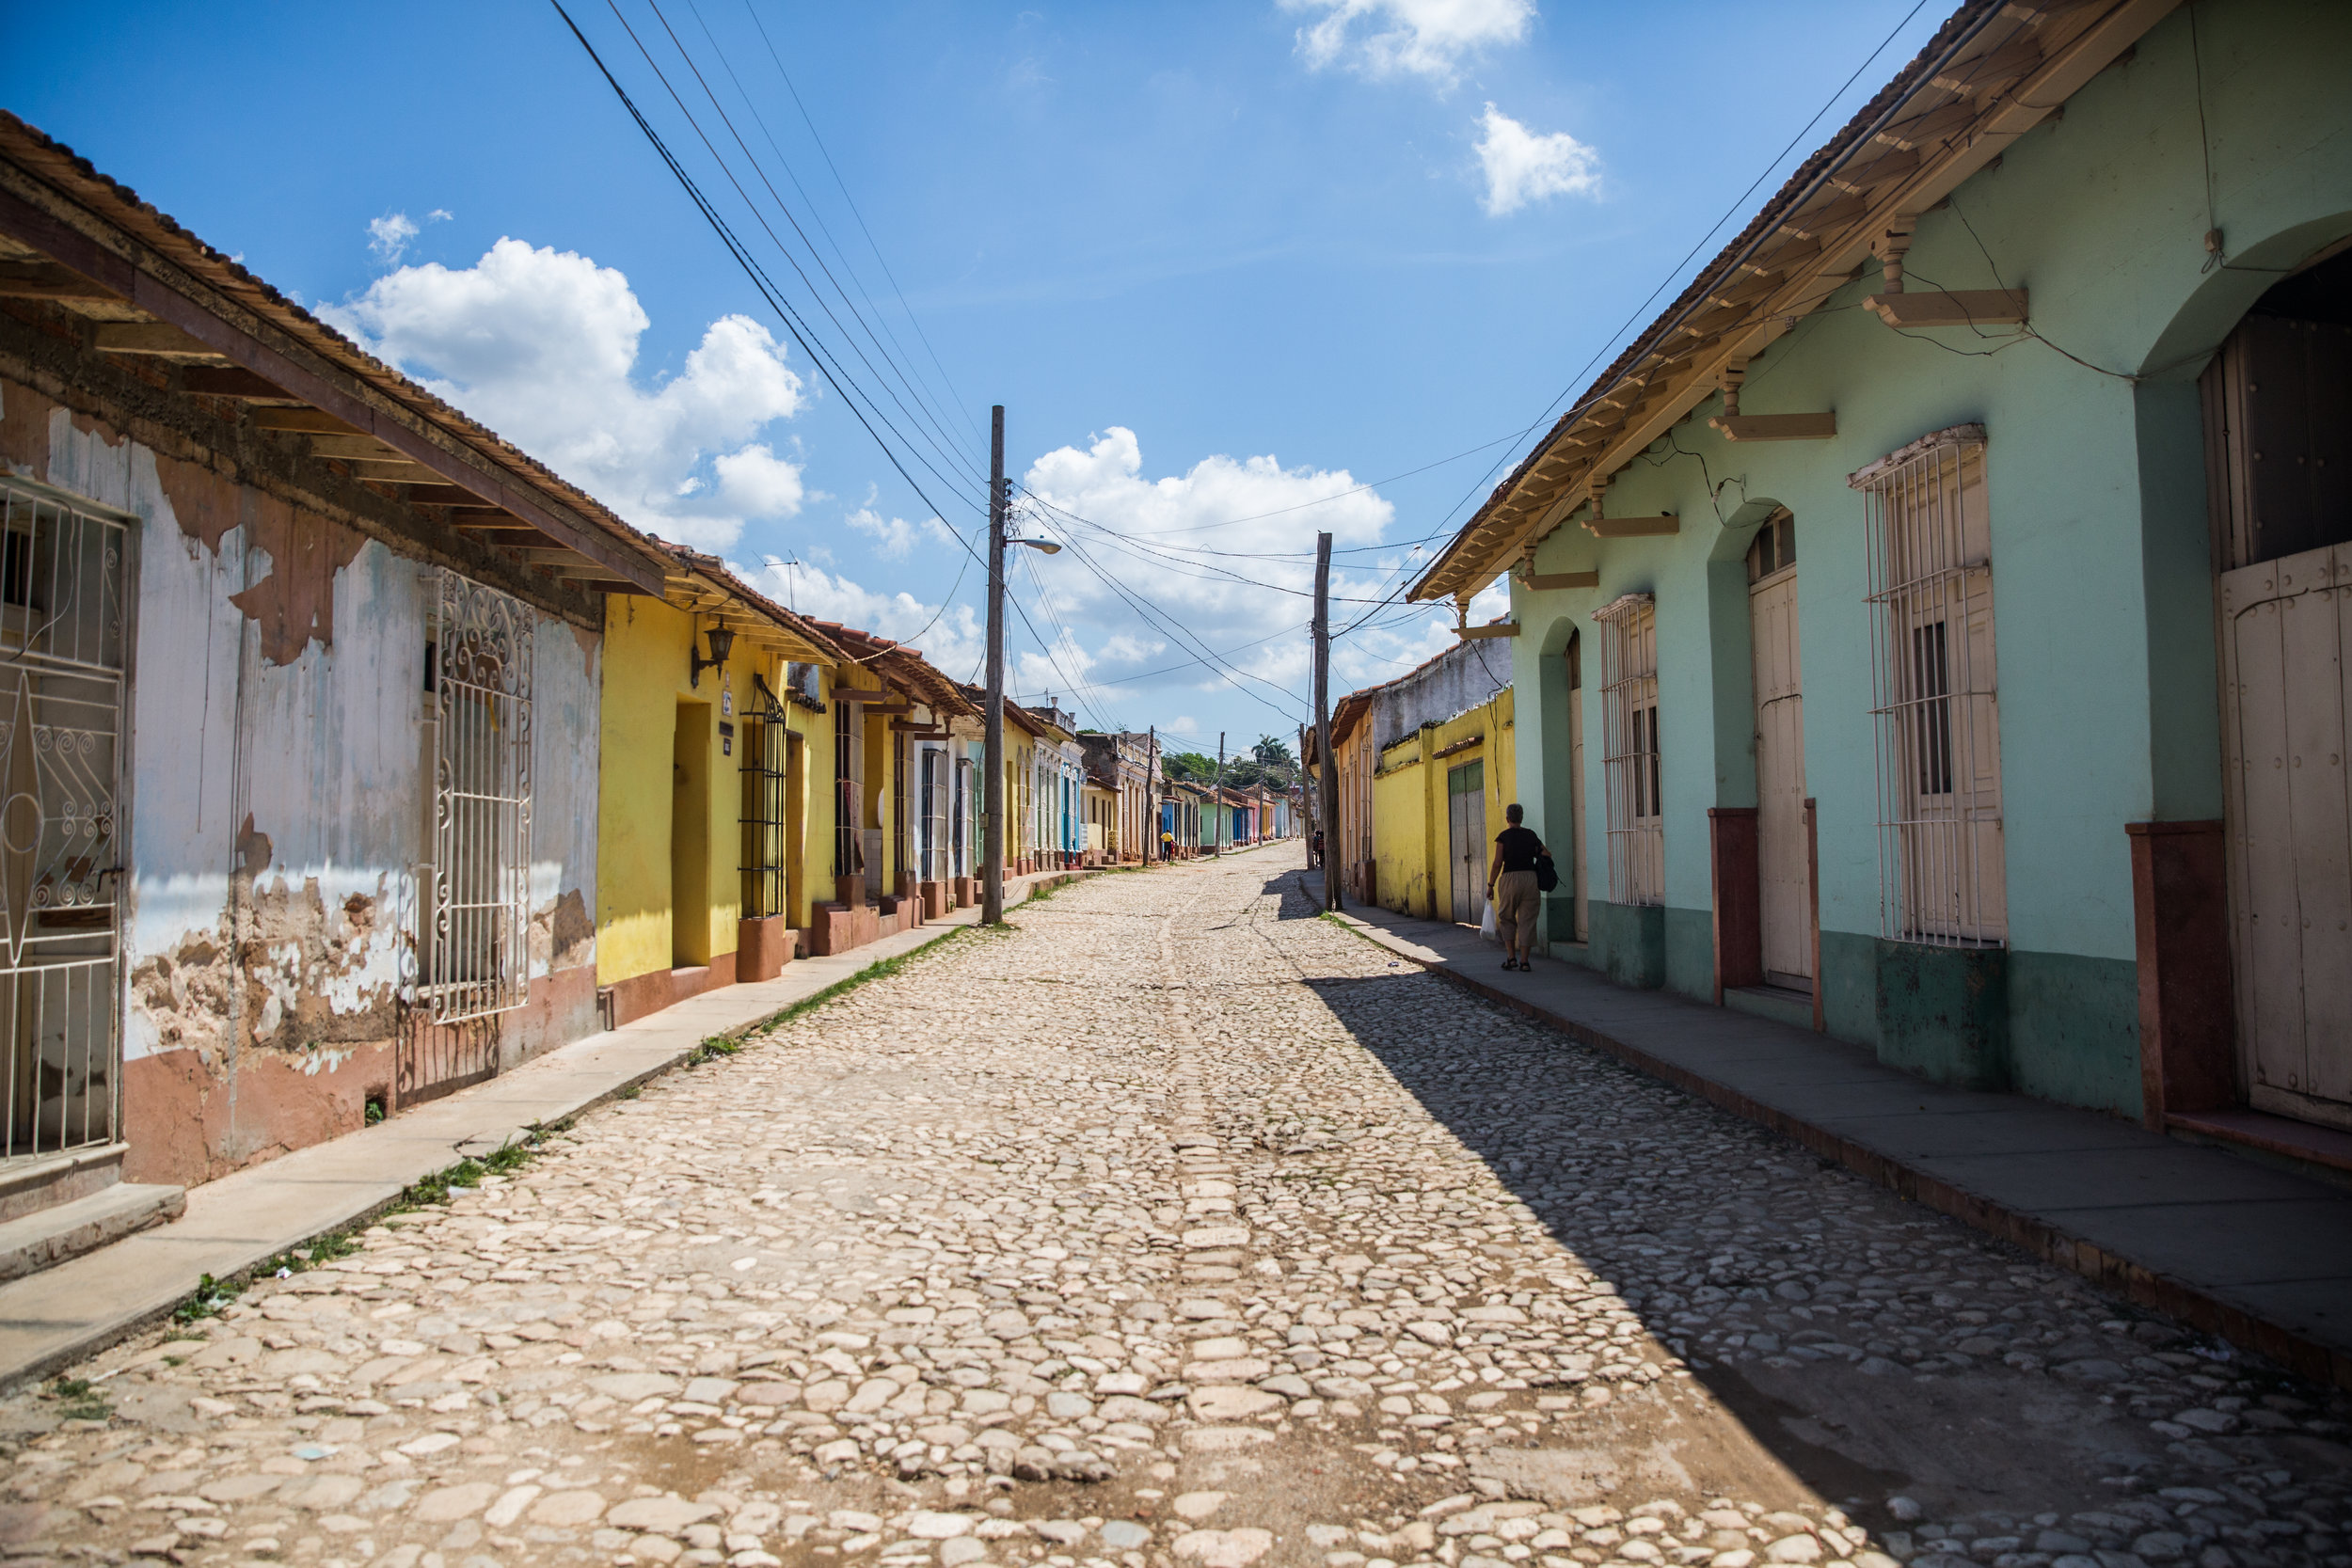 The coblestone streets still remain, couples gorgeously with the washed out pastels that Cuba is known for.